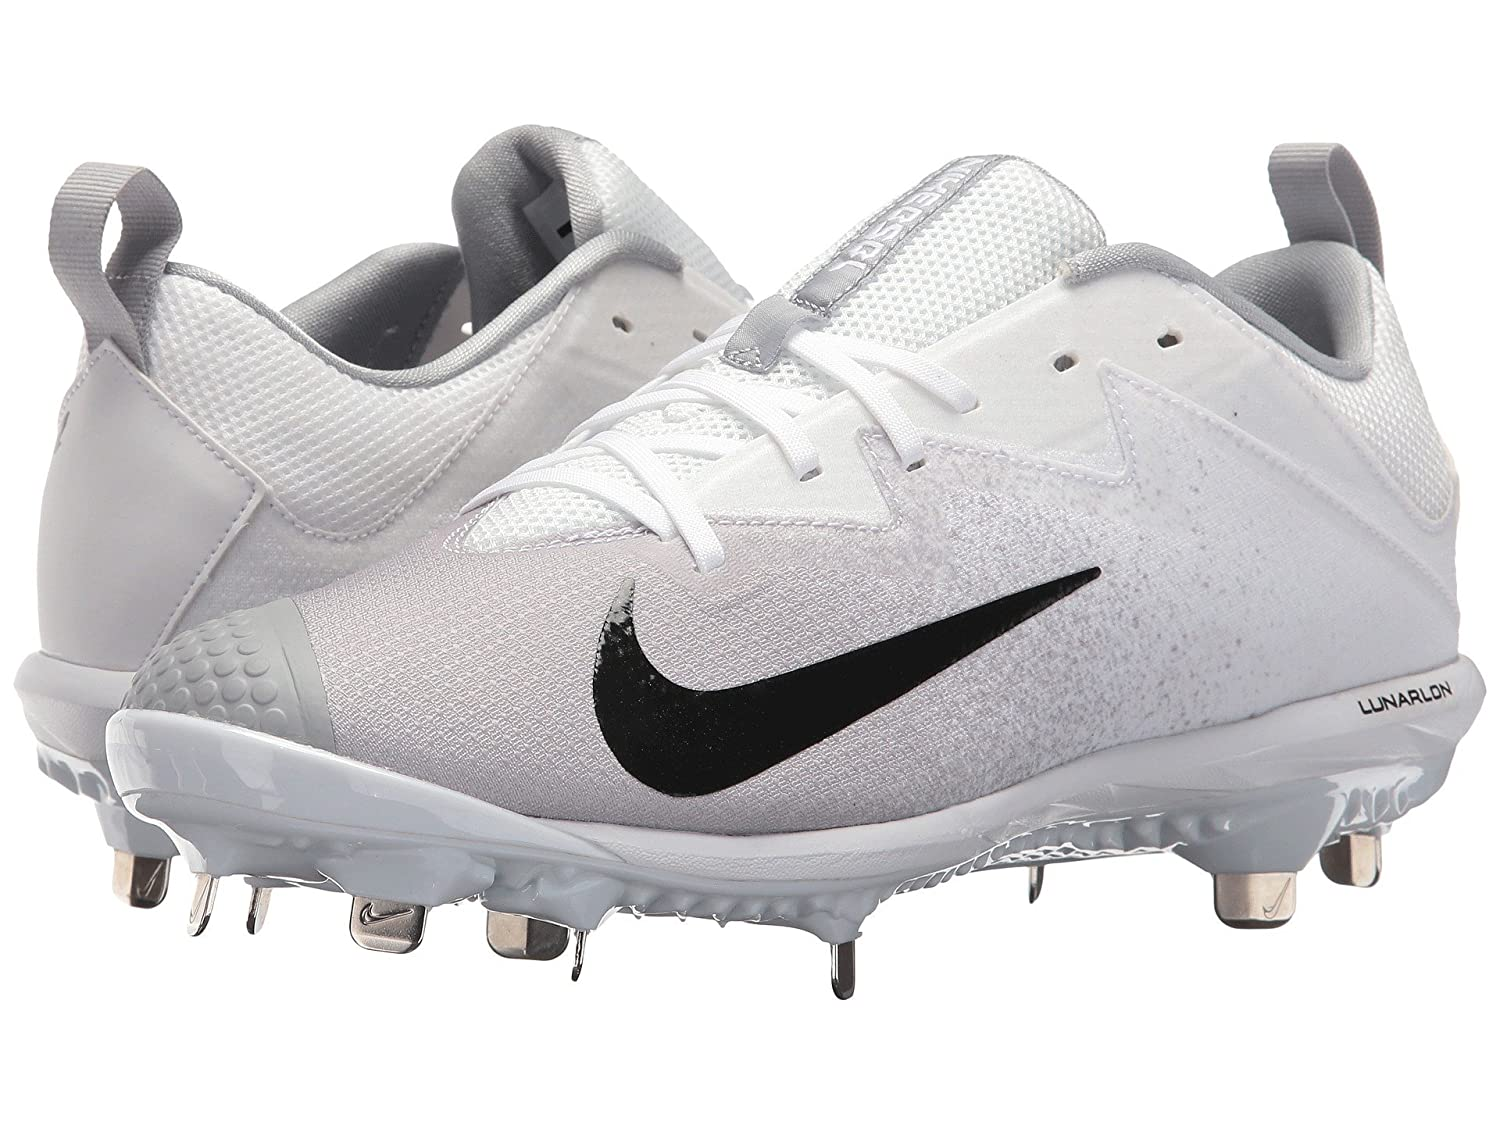 (ナイキ) NIKE メンズ野球ベースボールシューズ靴 Vapor Ultrafly Pro White/Black/Wolf Grey 13 (31cm) D Medium B078PTNY23